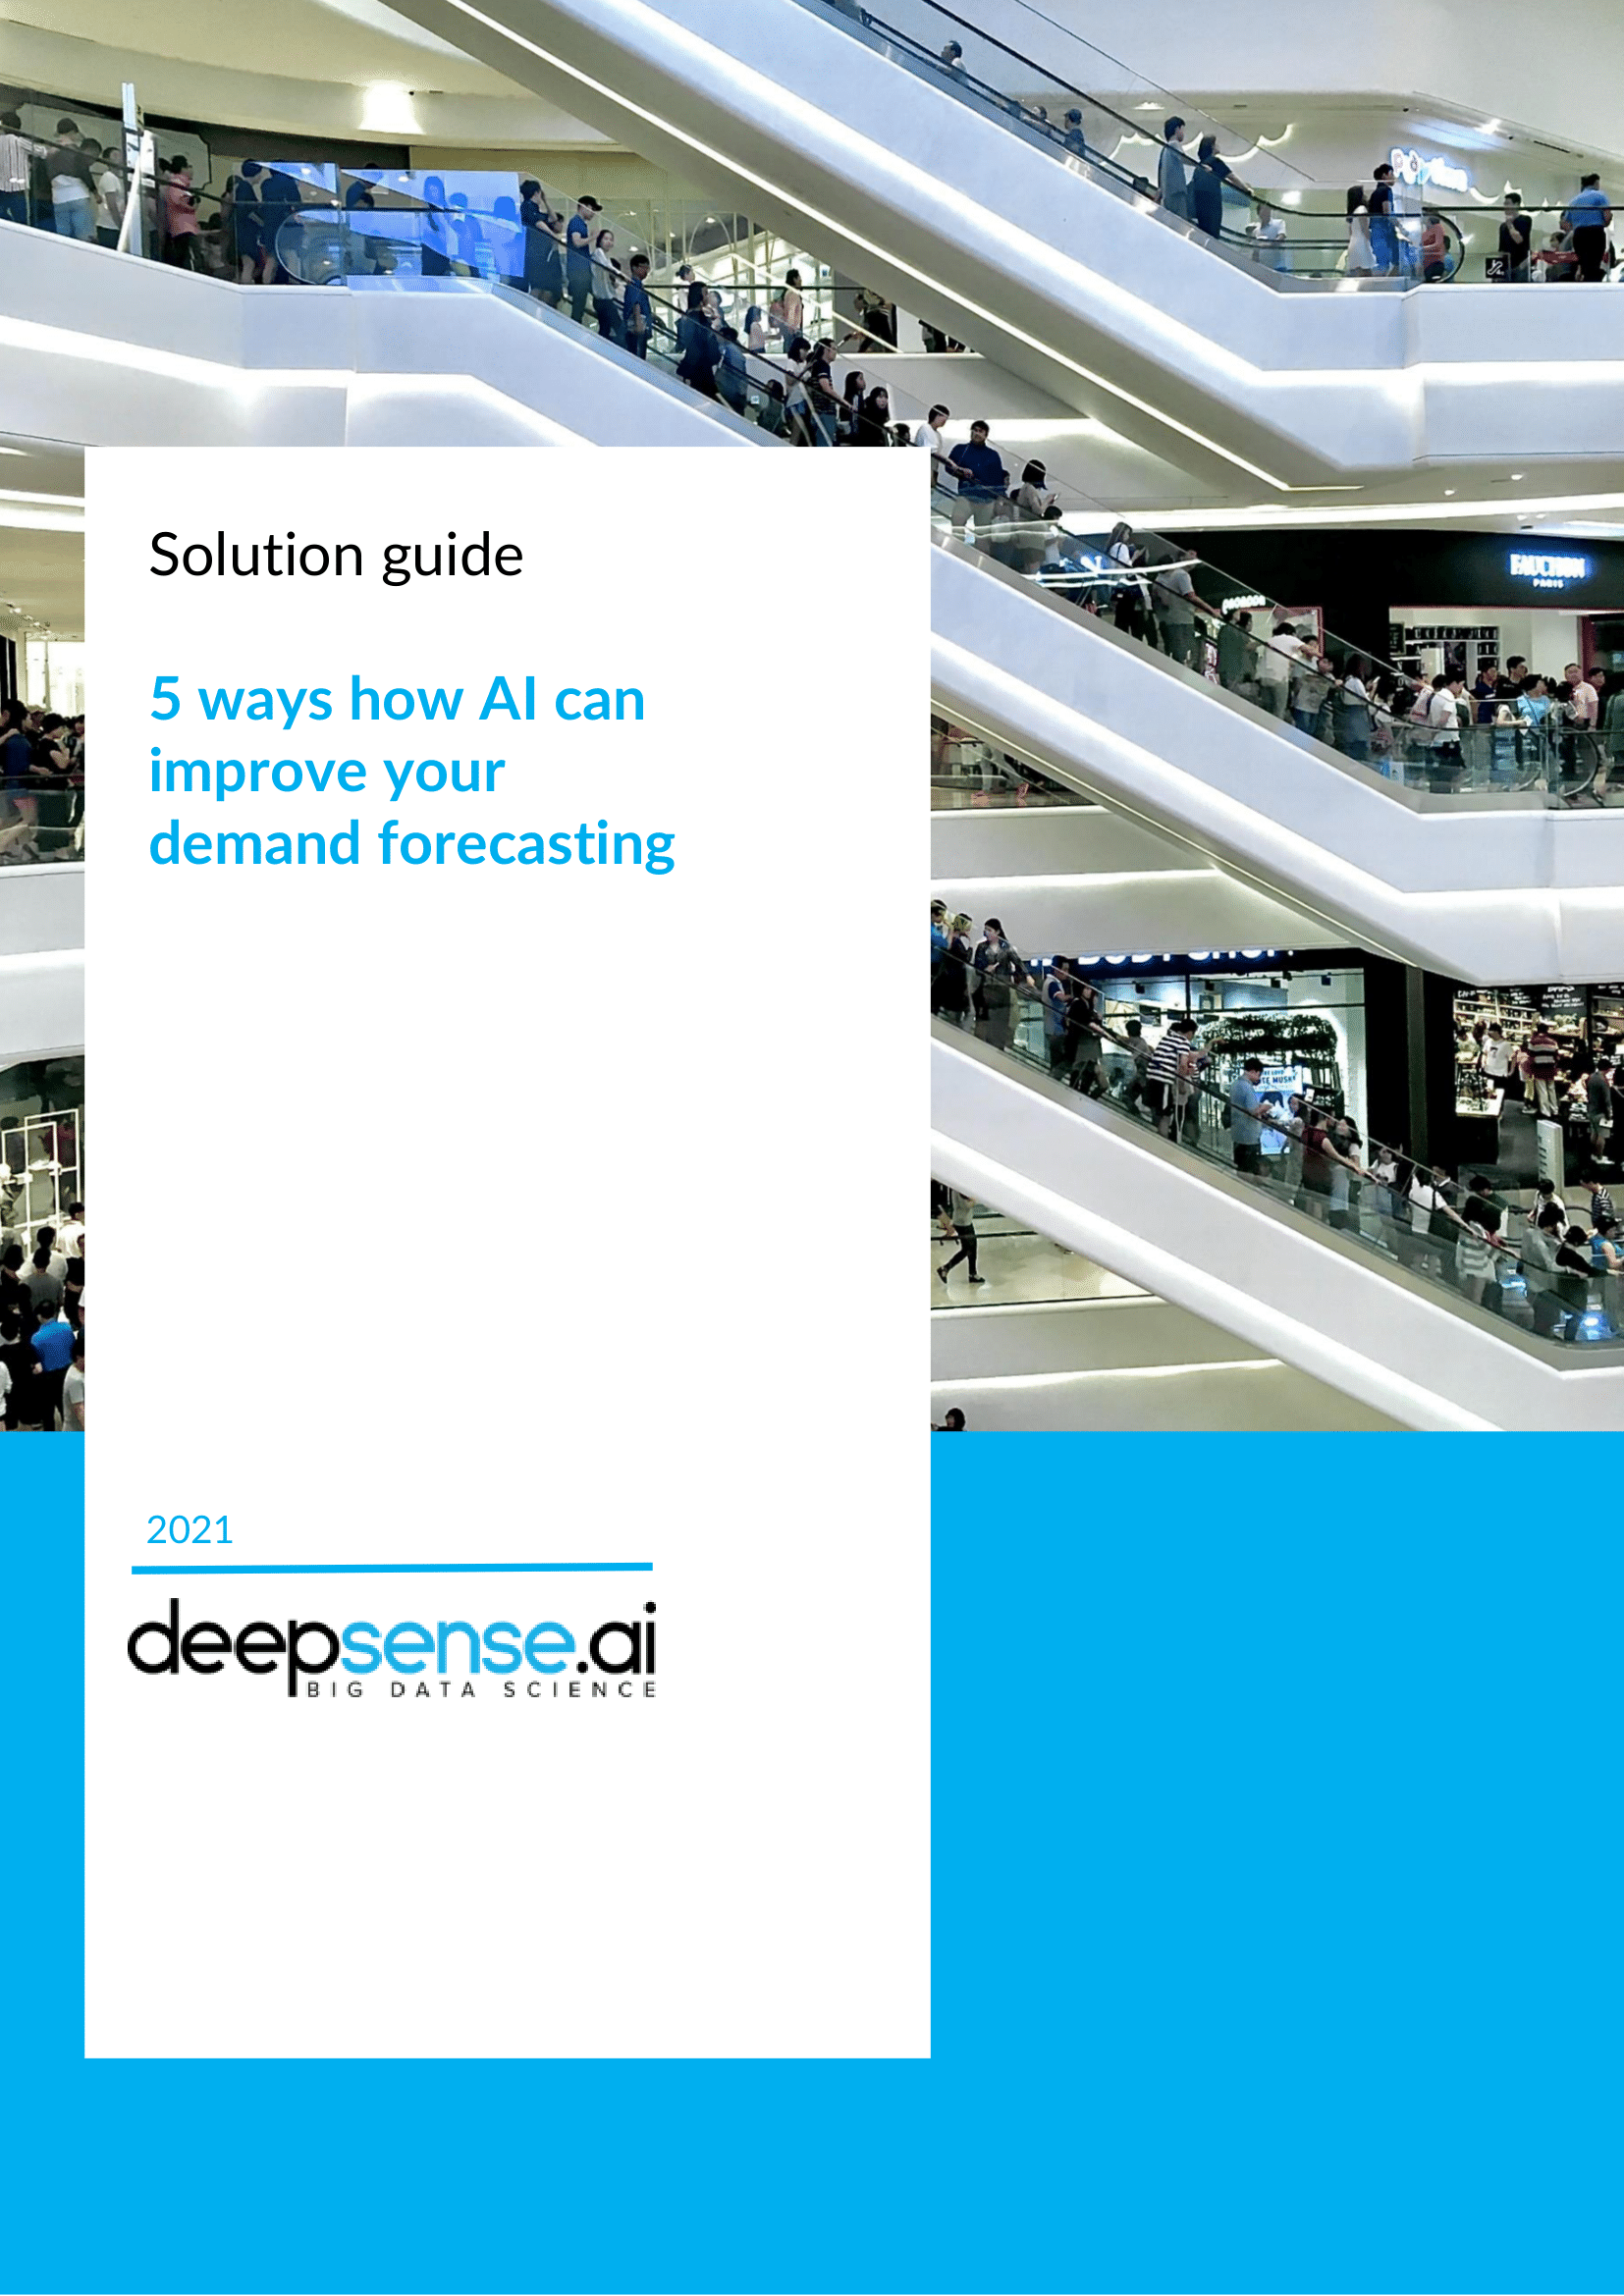 5 ways how AI can improve your demand forecasting